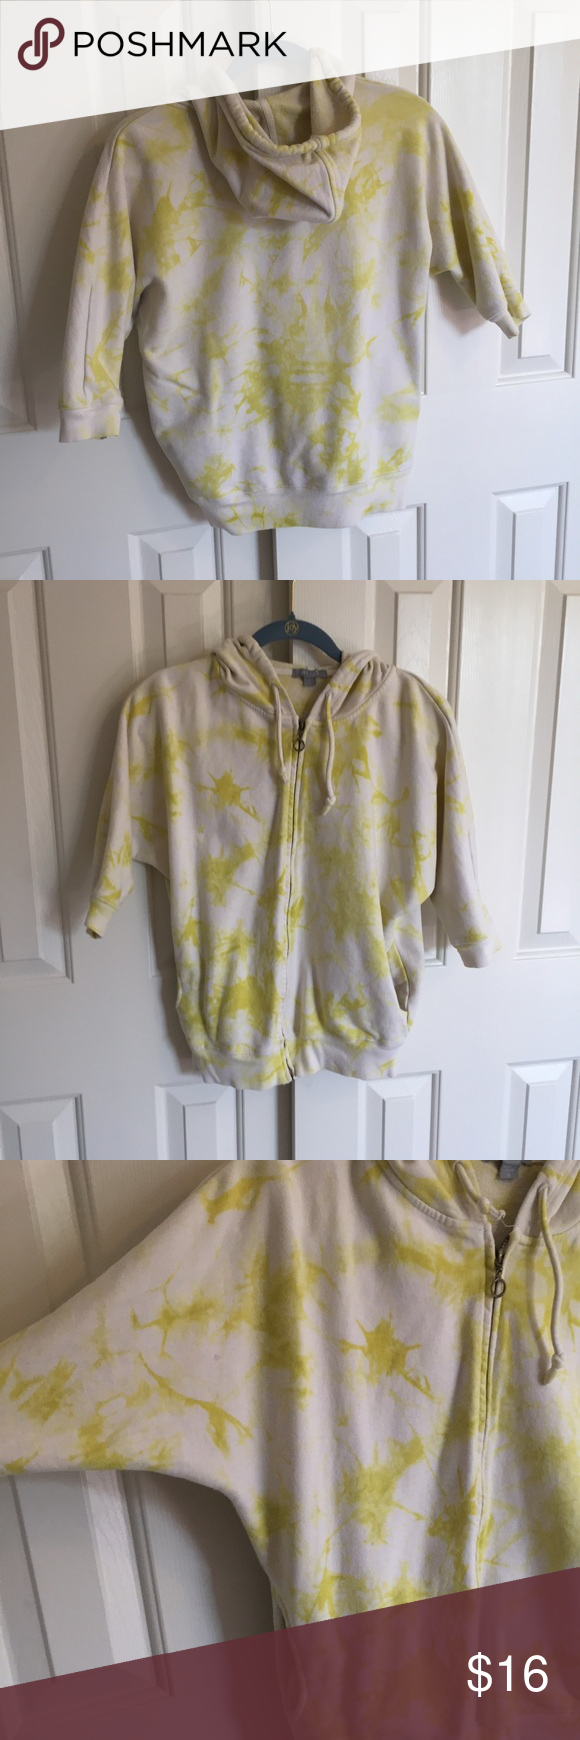 Tie Dye Hoodie delia's yellow tie dye hoodie with quarter sleeves. size small, excellent condition. Wing style sleeves, go a little past the elbow. comfortable material! Forever 21 Tops Sweatshirts & Hoodies